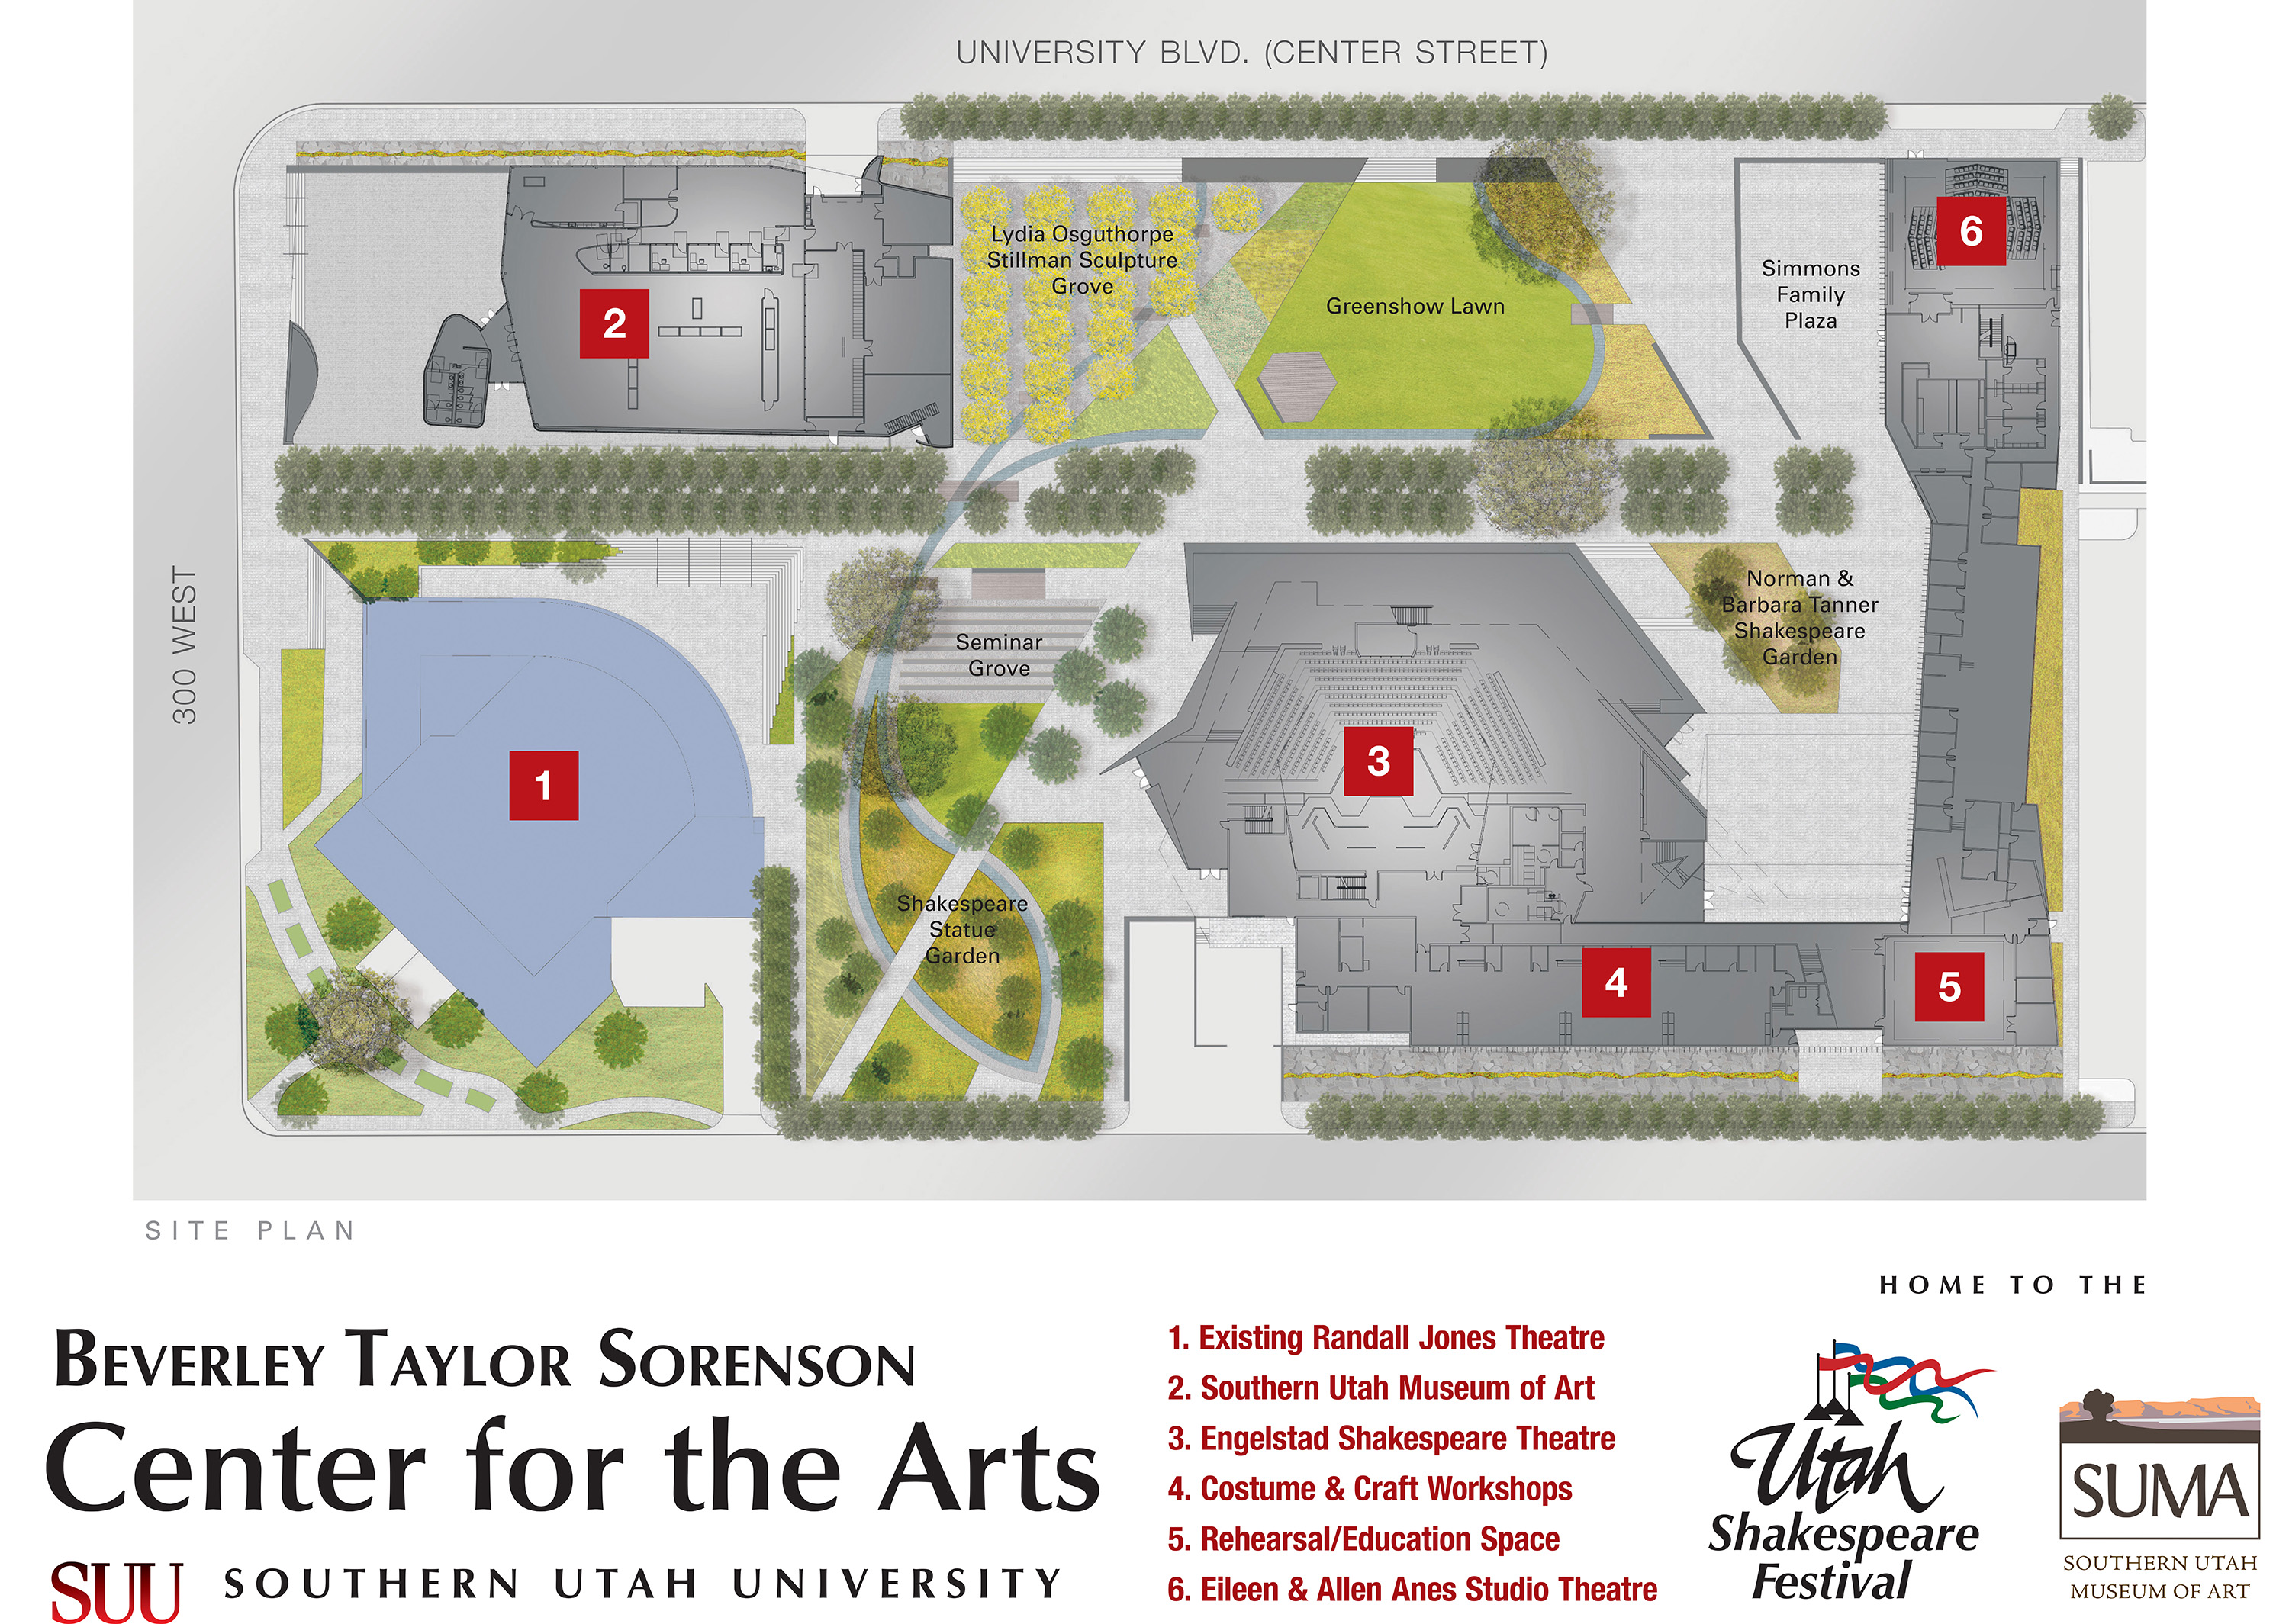 Site map for Englestad Theatre, Beverly Taylor Sorenson Center for the Arts | Rendering courtesy of Utah Shakespeare Festival, St. George News